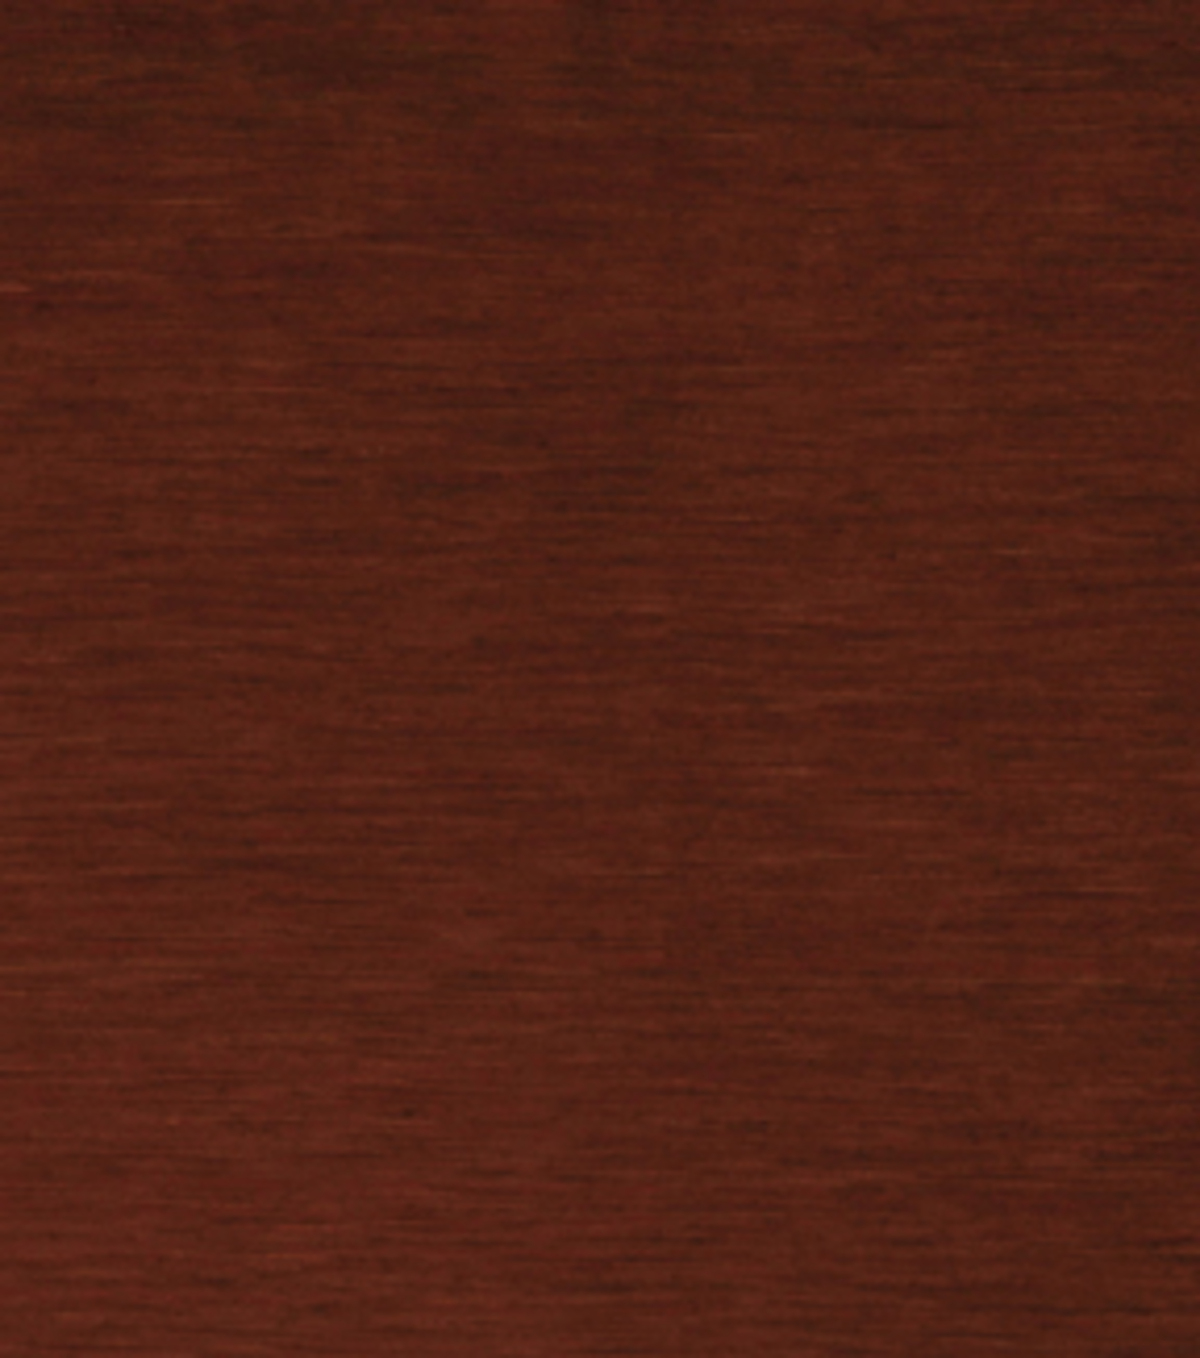 Home Decor 8\u0022x8\u0022 Fabric Swatch--Signature Series Shelburne-Shiraz